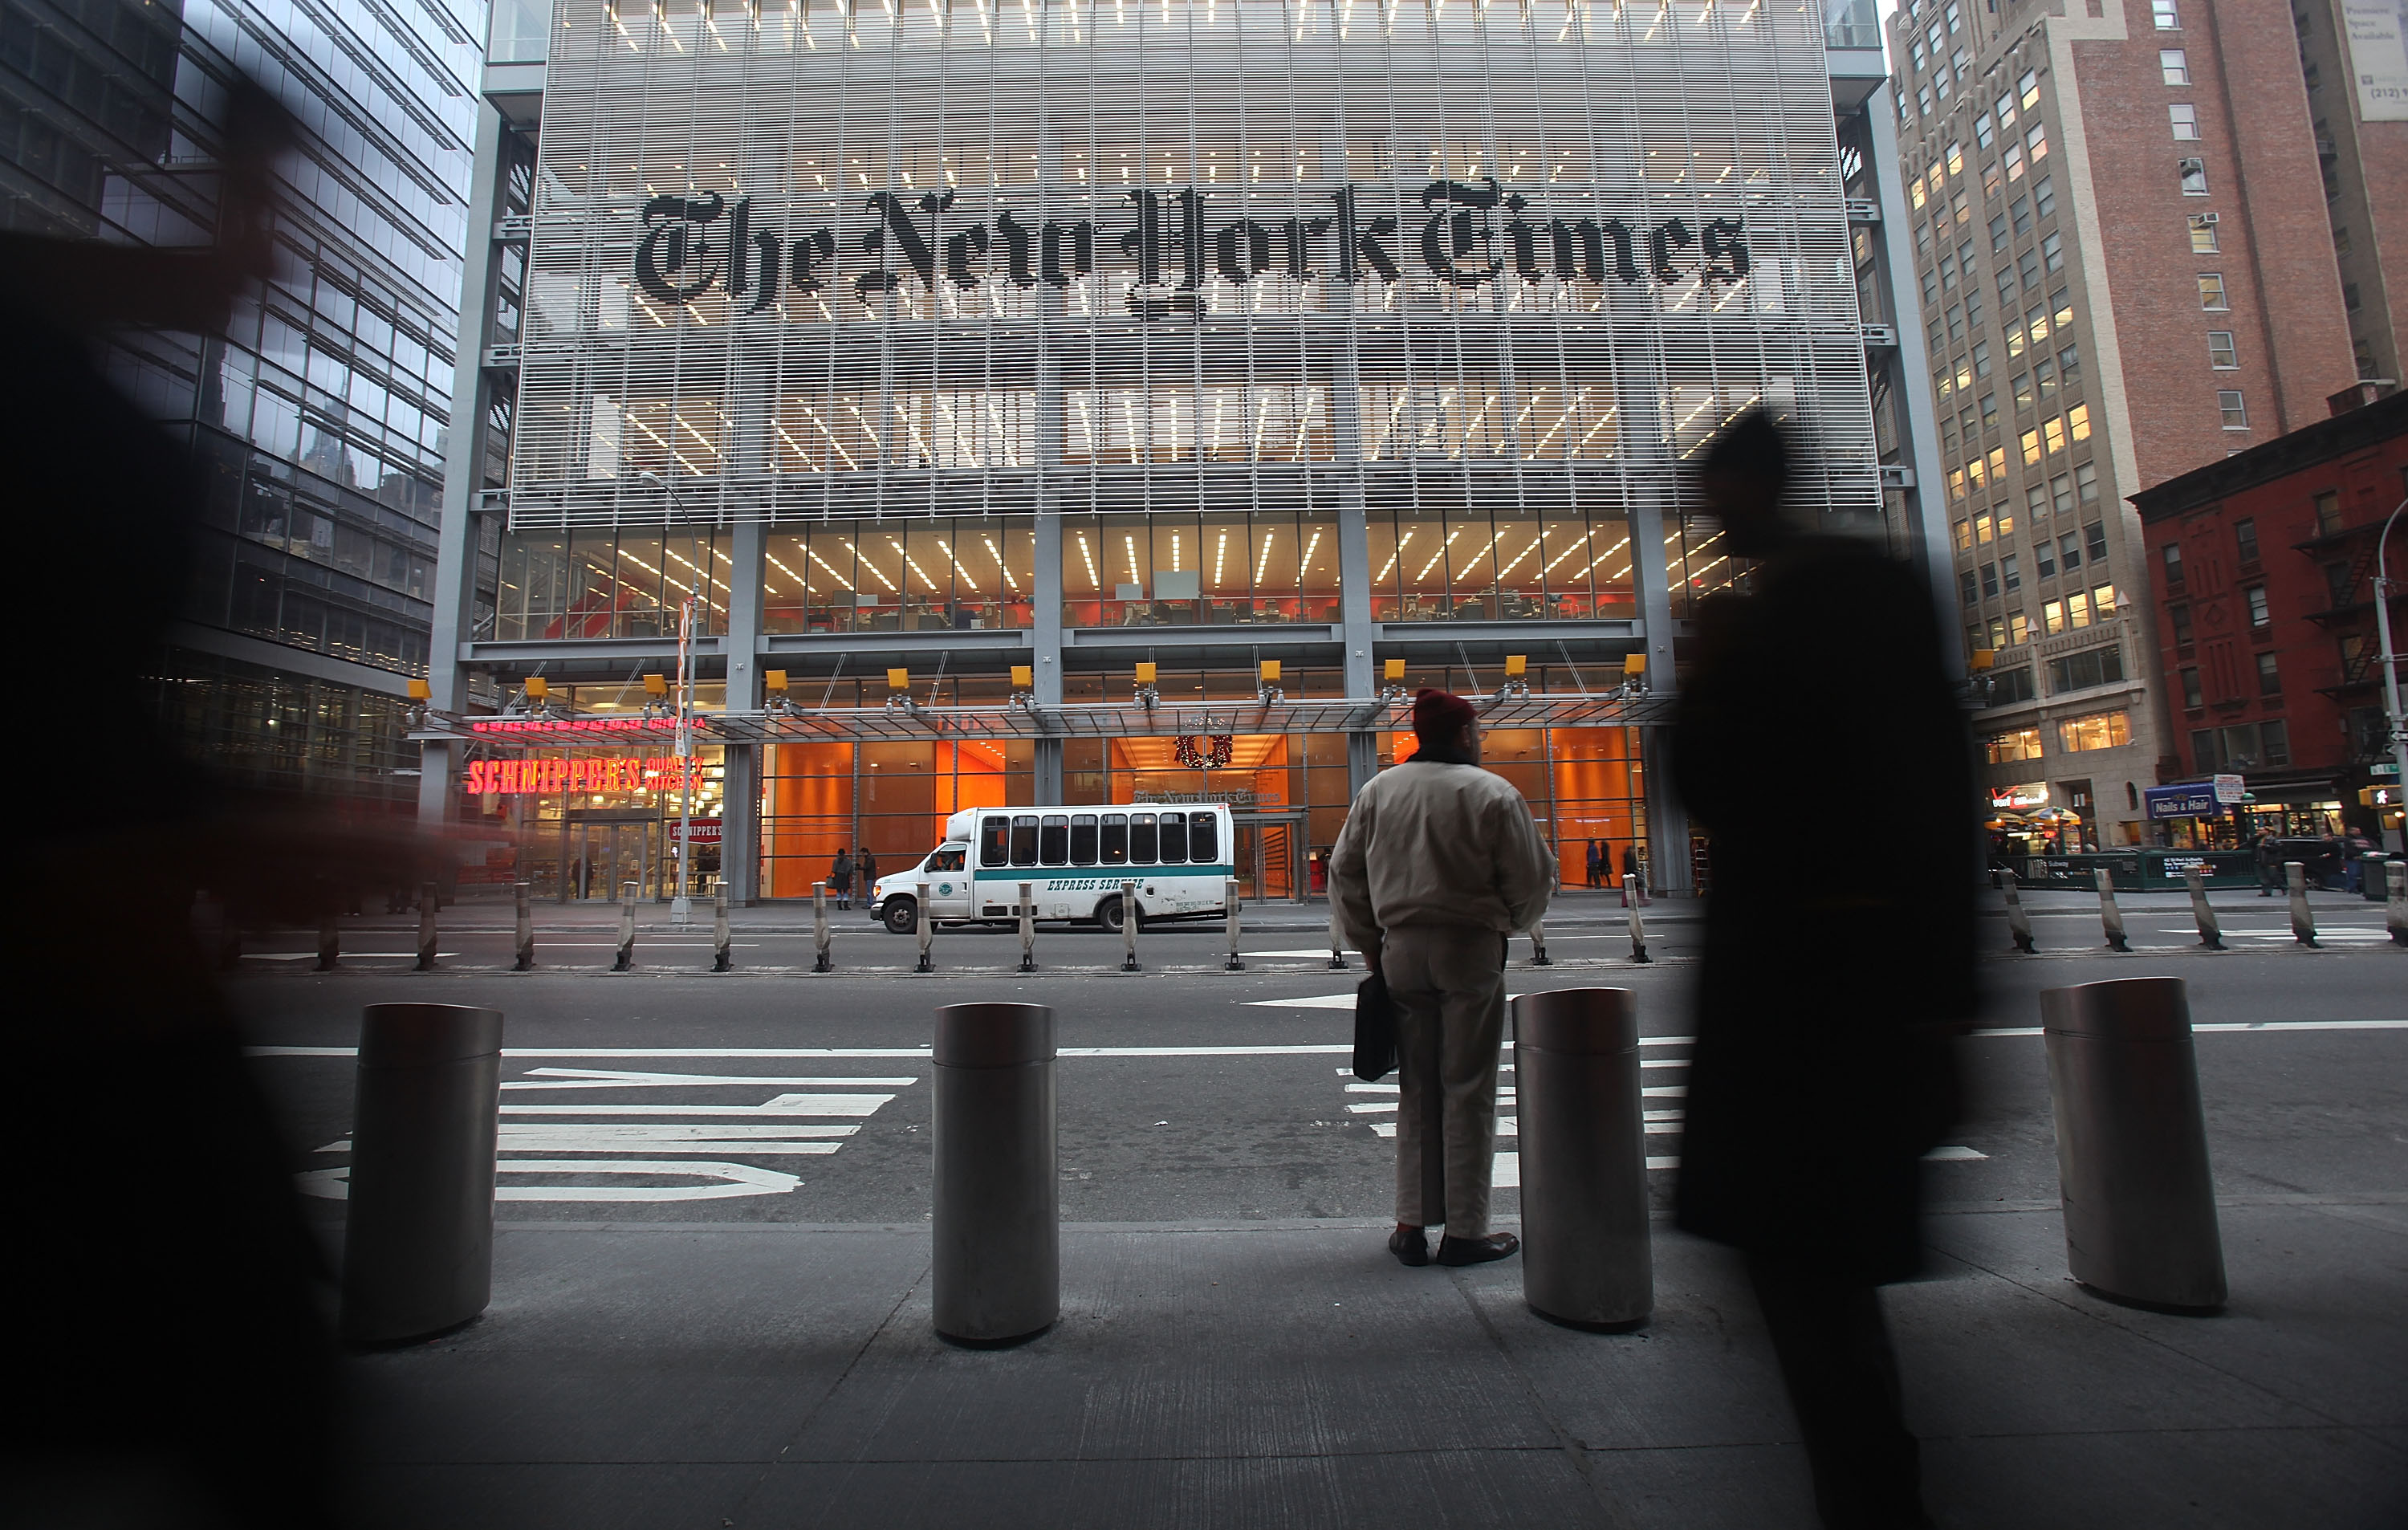 The New York Times' midtown Manhattan headquarters.